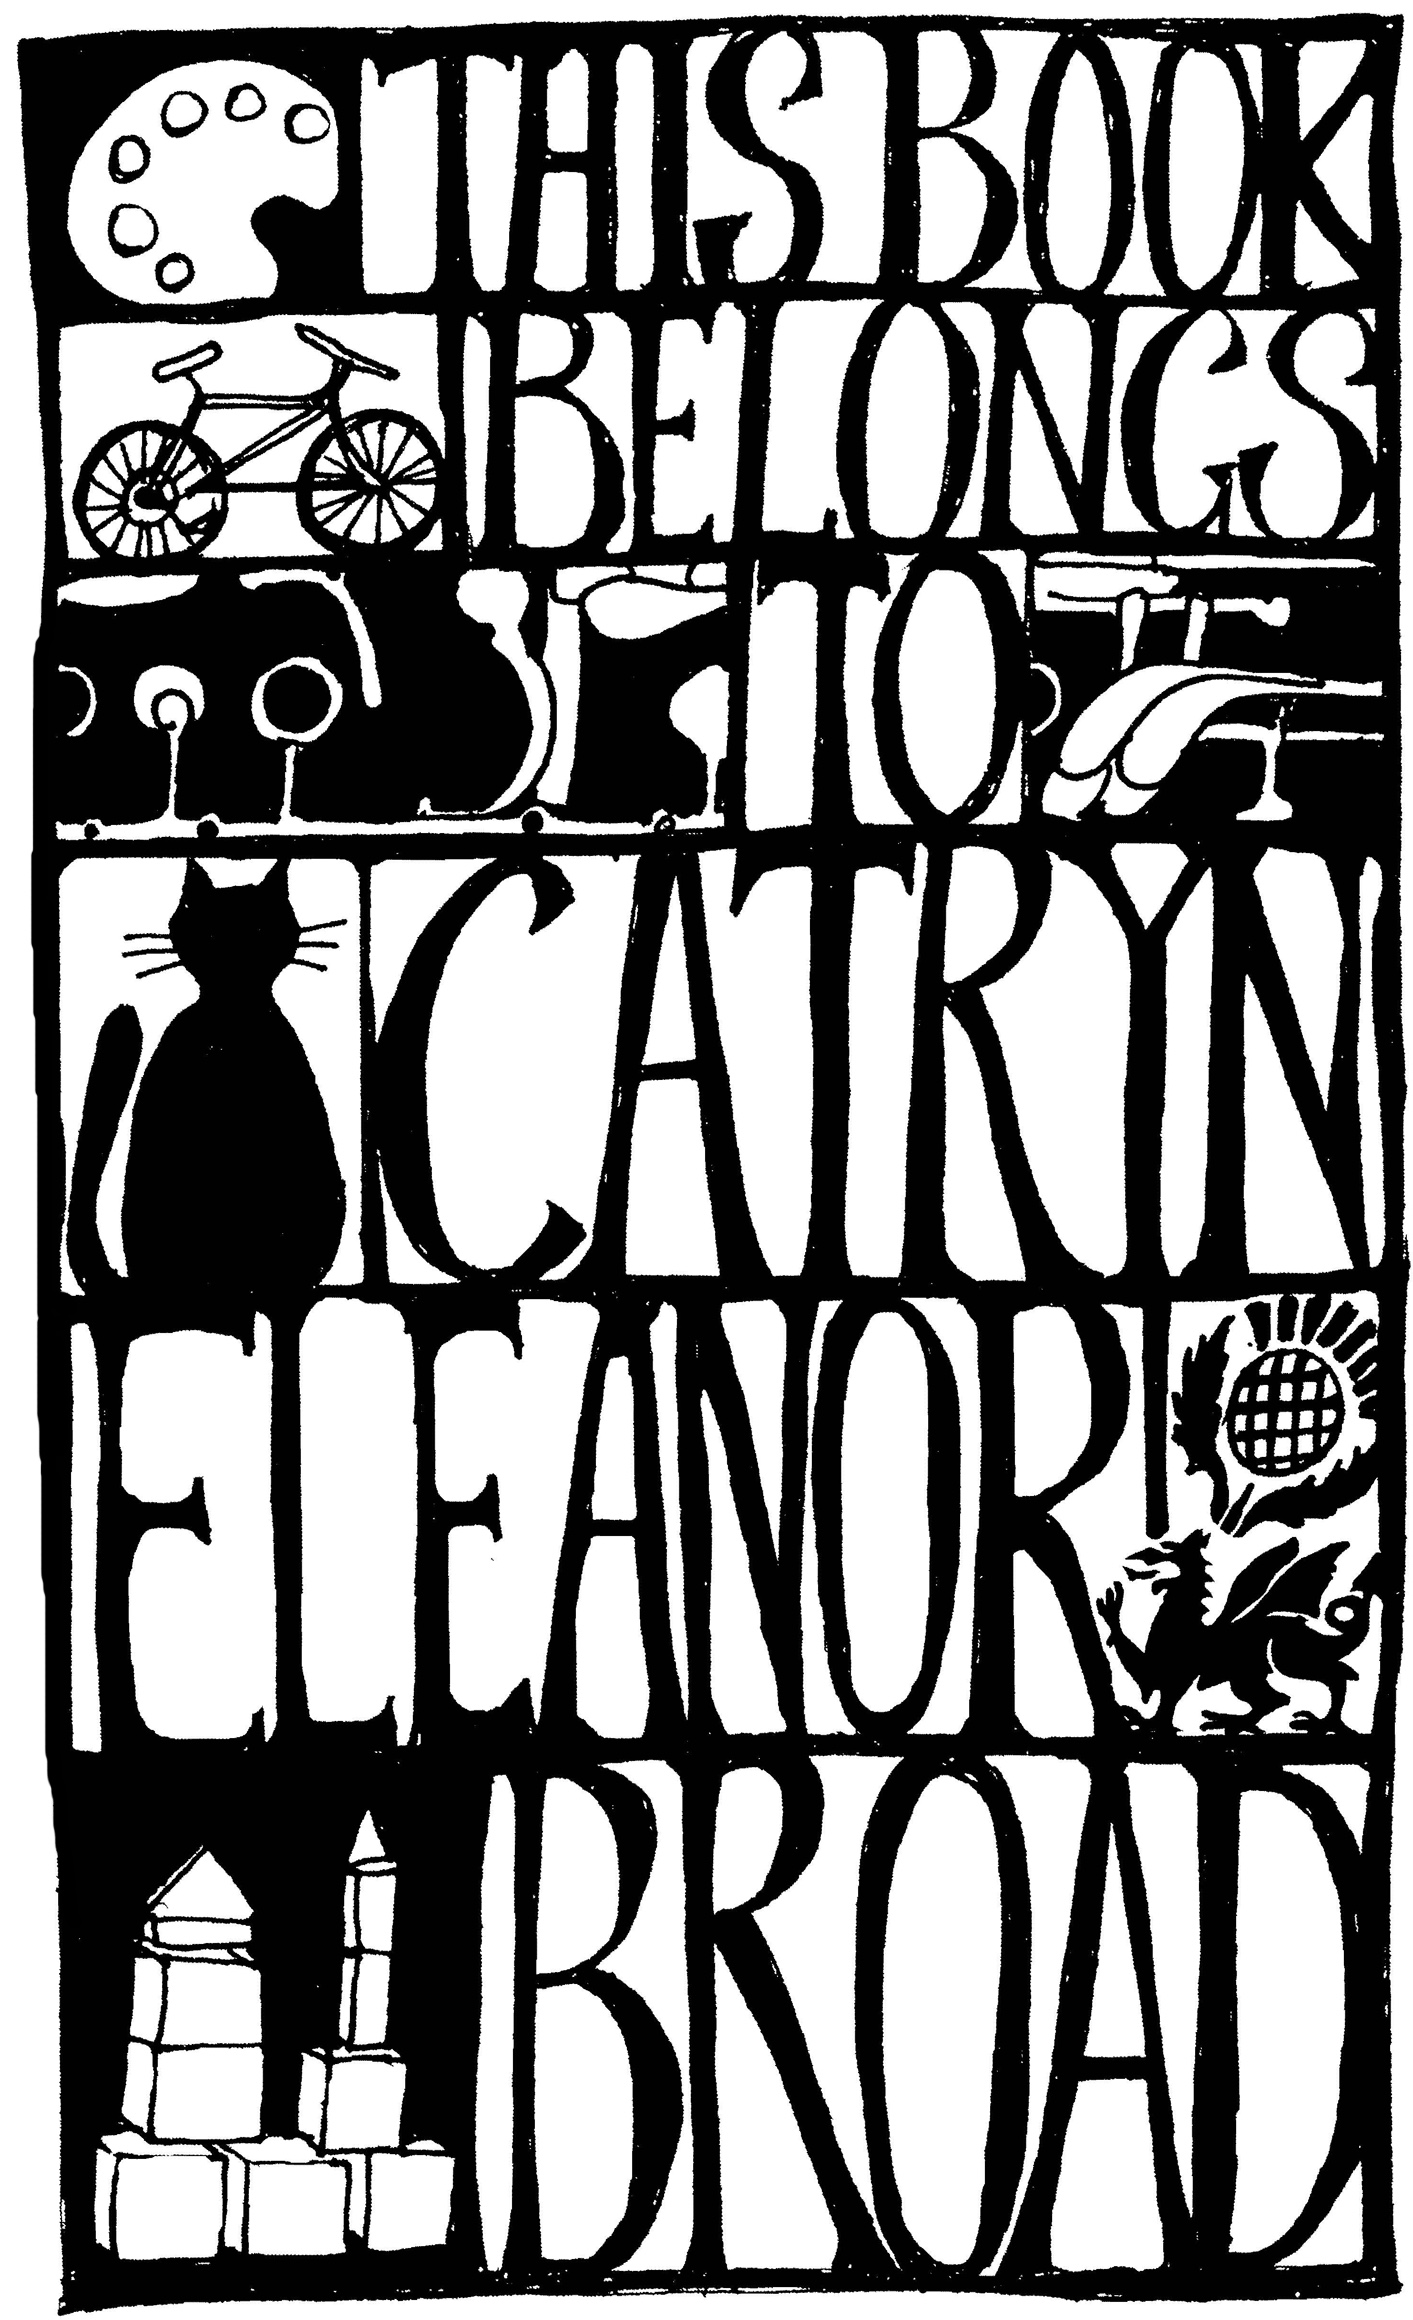 bookplate_cat_6x10.jpg